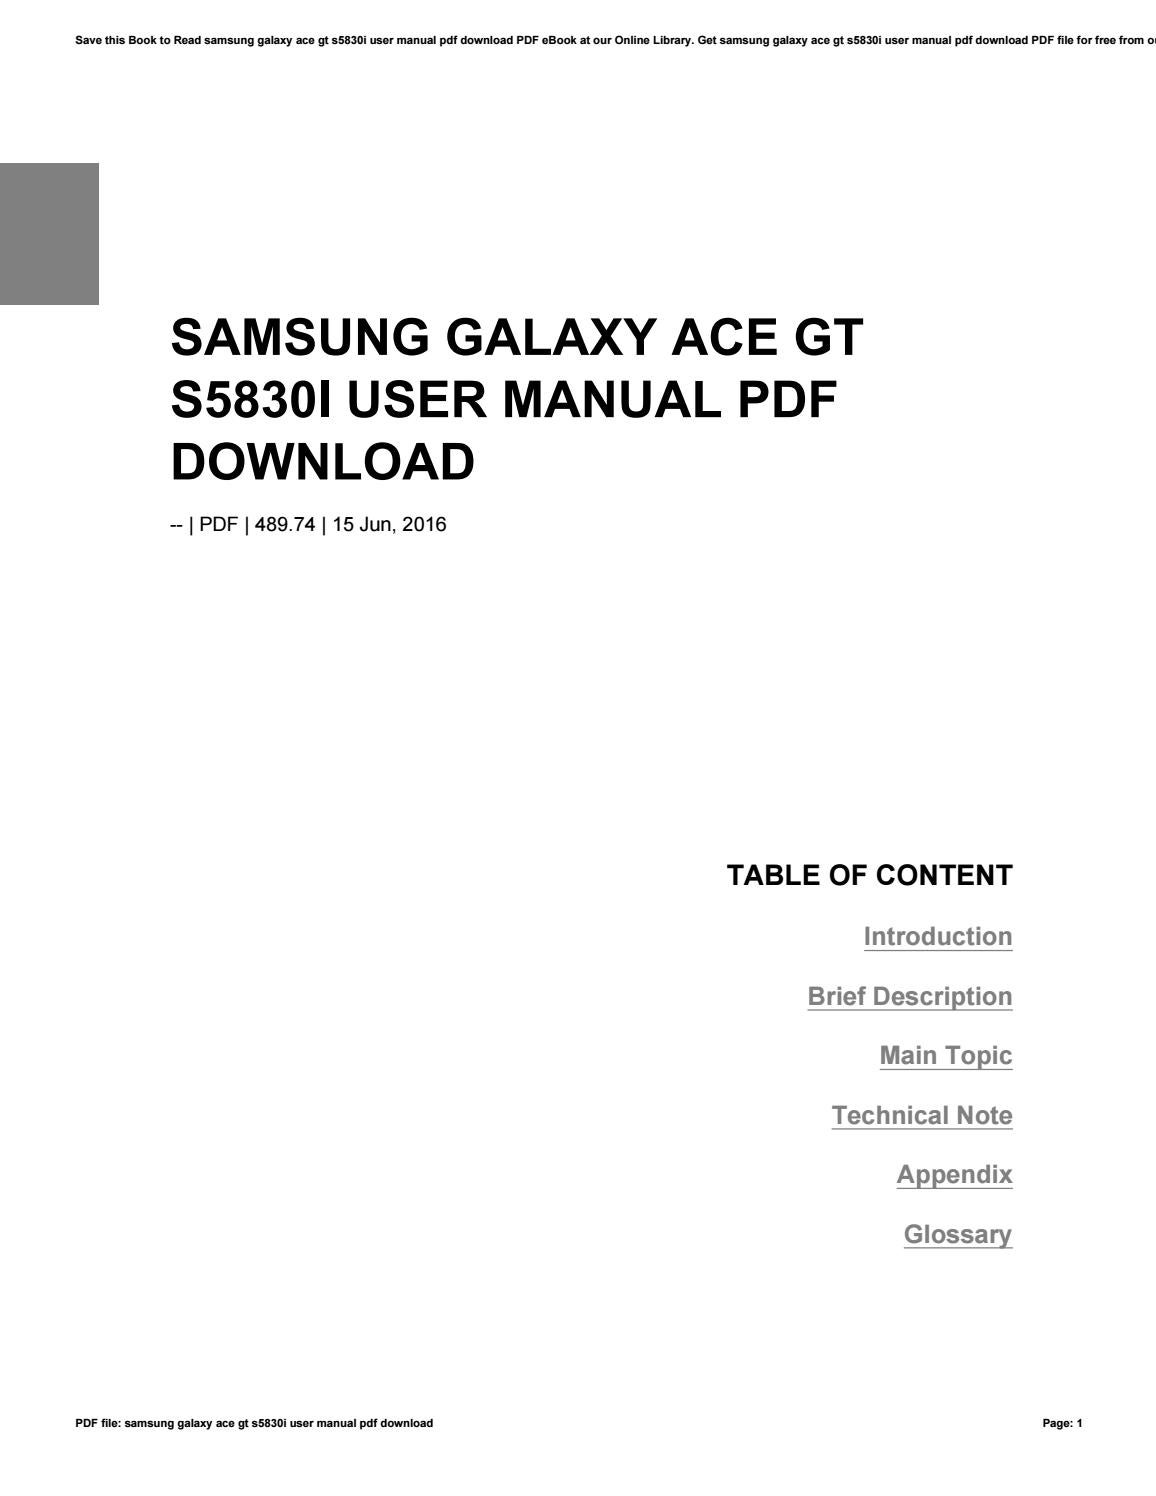 Manual samsung galaxy ace.